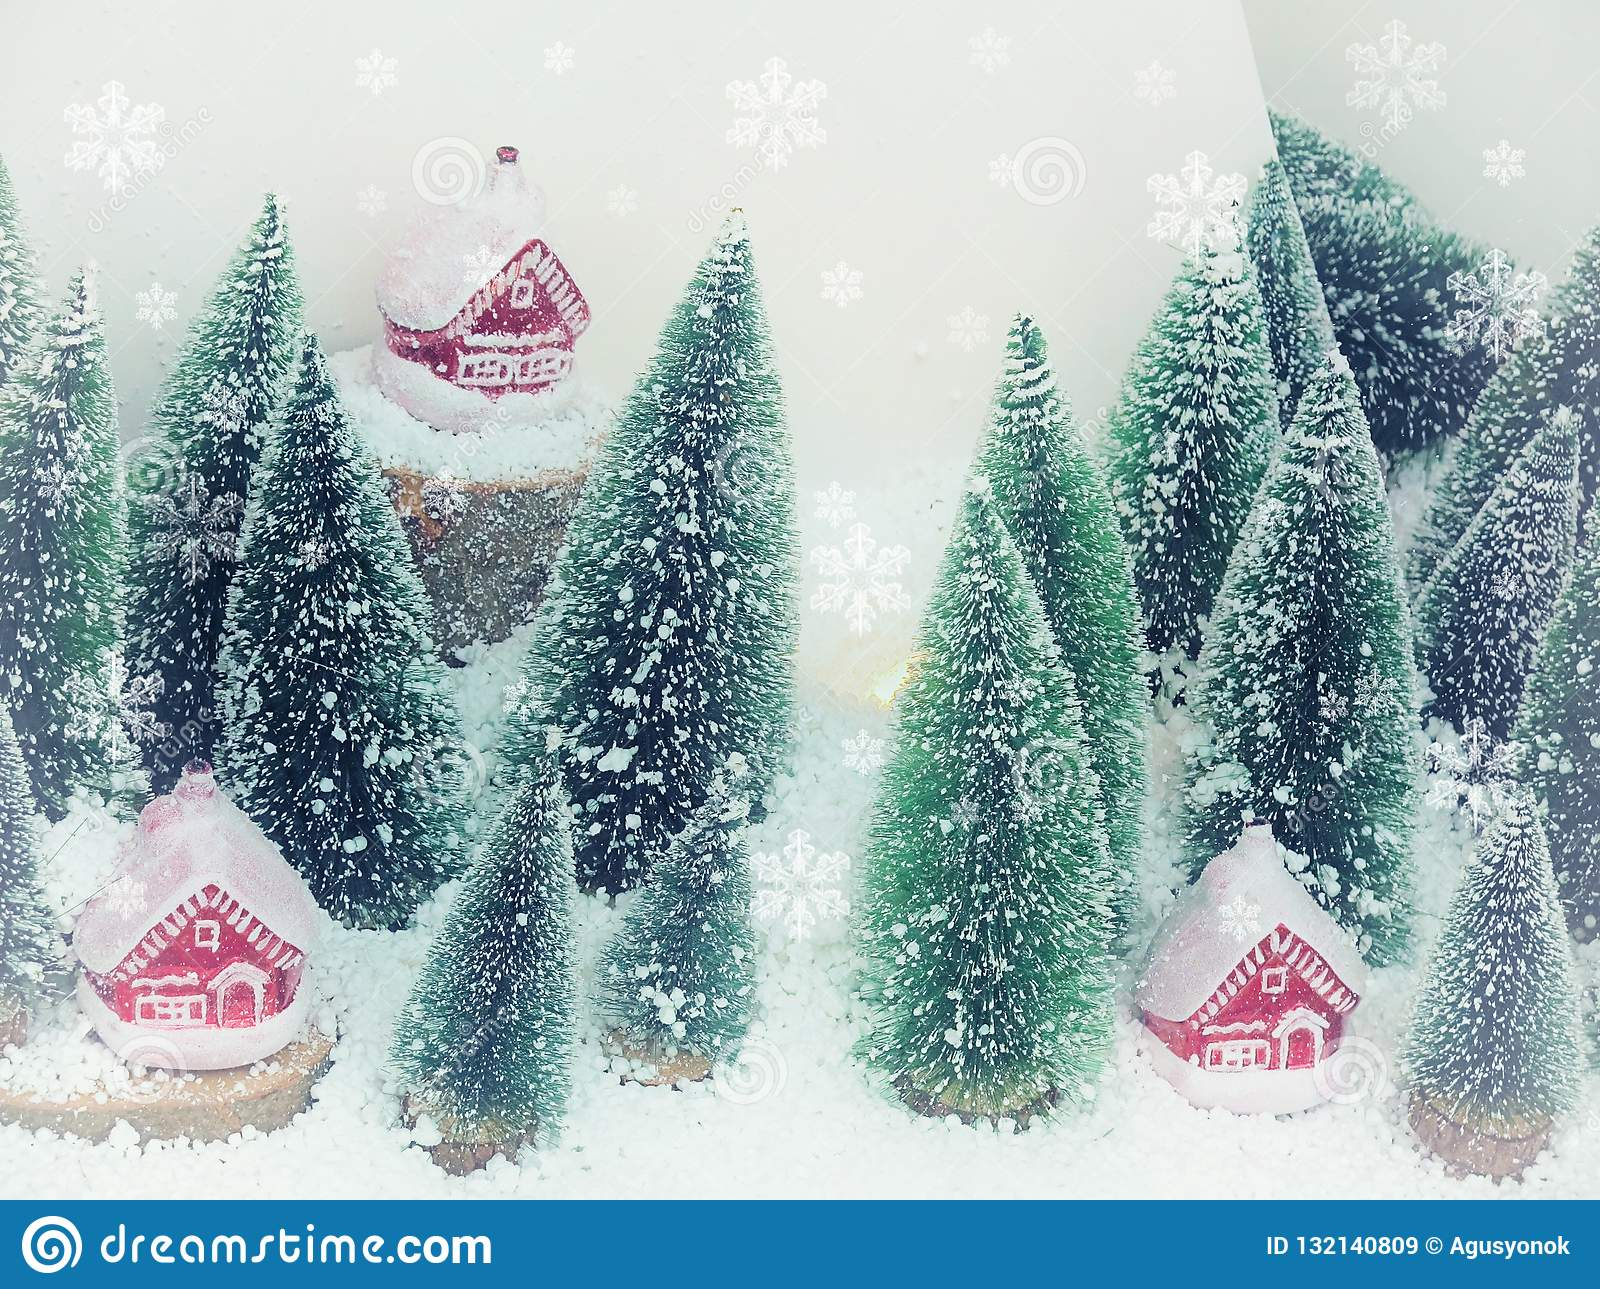 Beautiful Christmas background greeting card. Winter scenery snow forest and houses. New Year